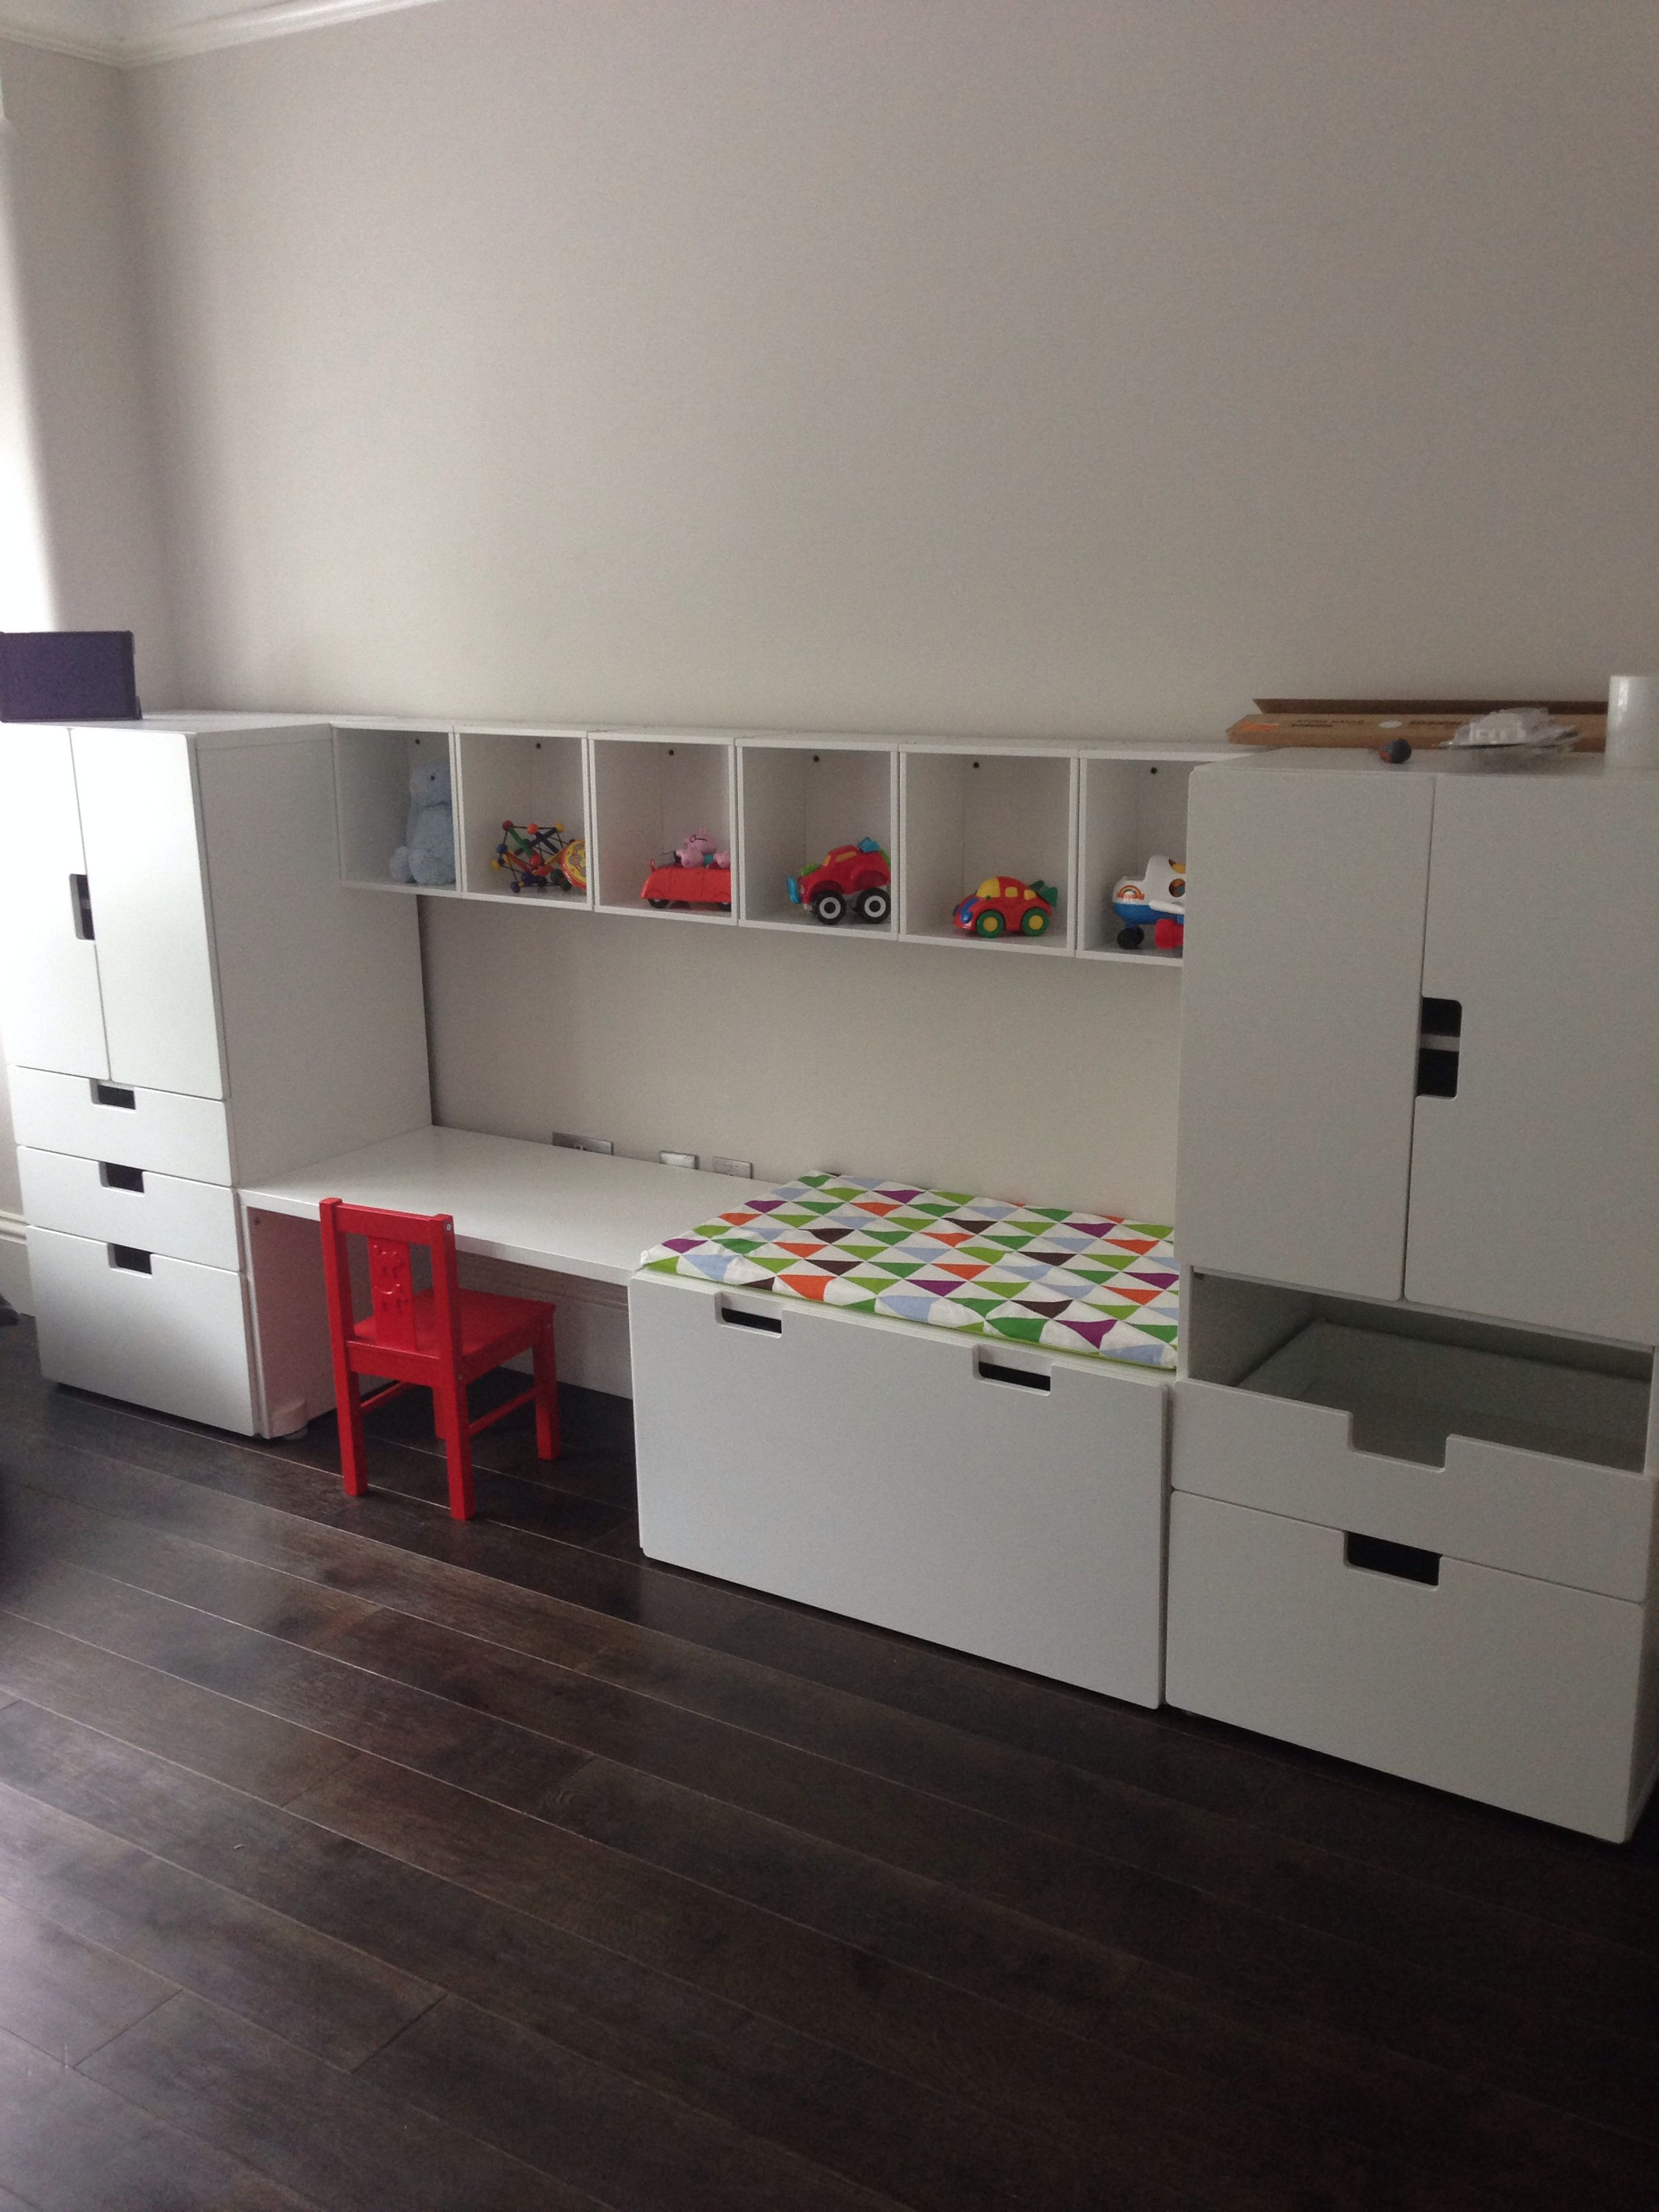 Ikéa Stuva Stuva Desk And Units With Forhoja Box Shelves From Ikea Garage